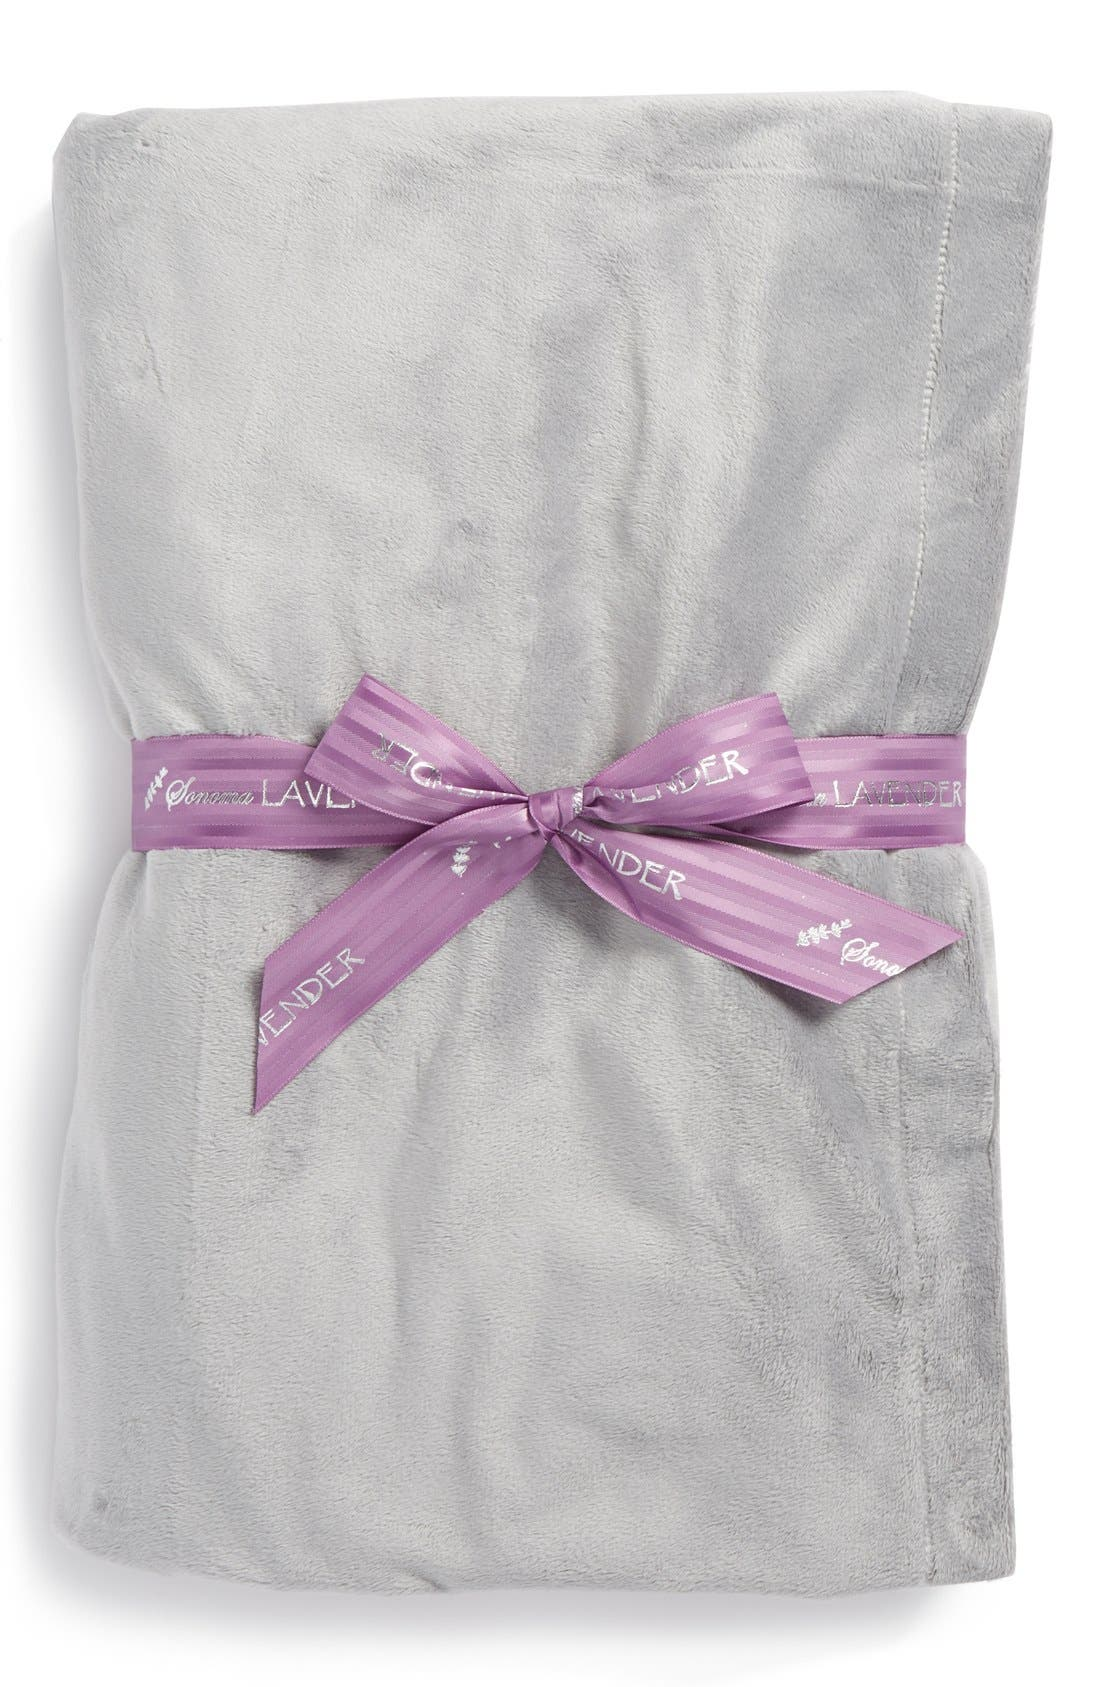 Solid Silver Blankie,                         Main,                         color, 000